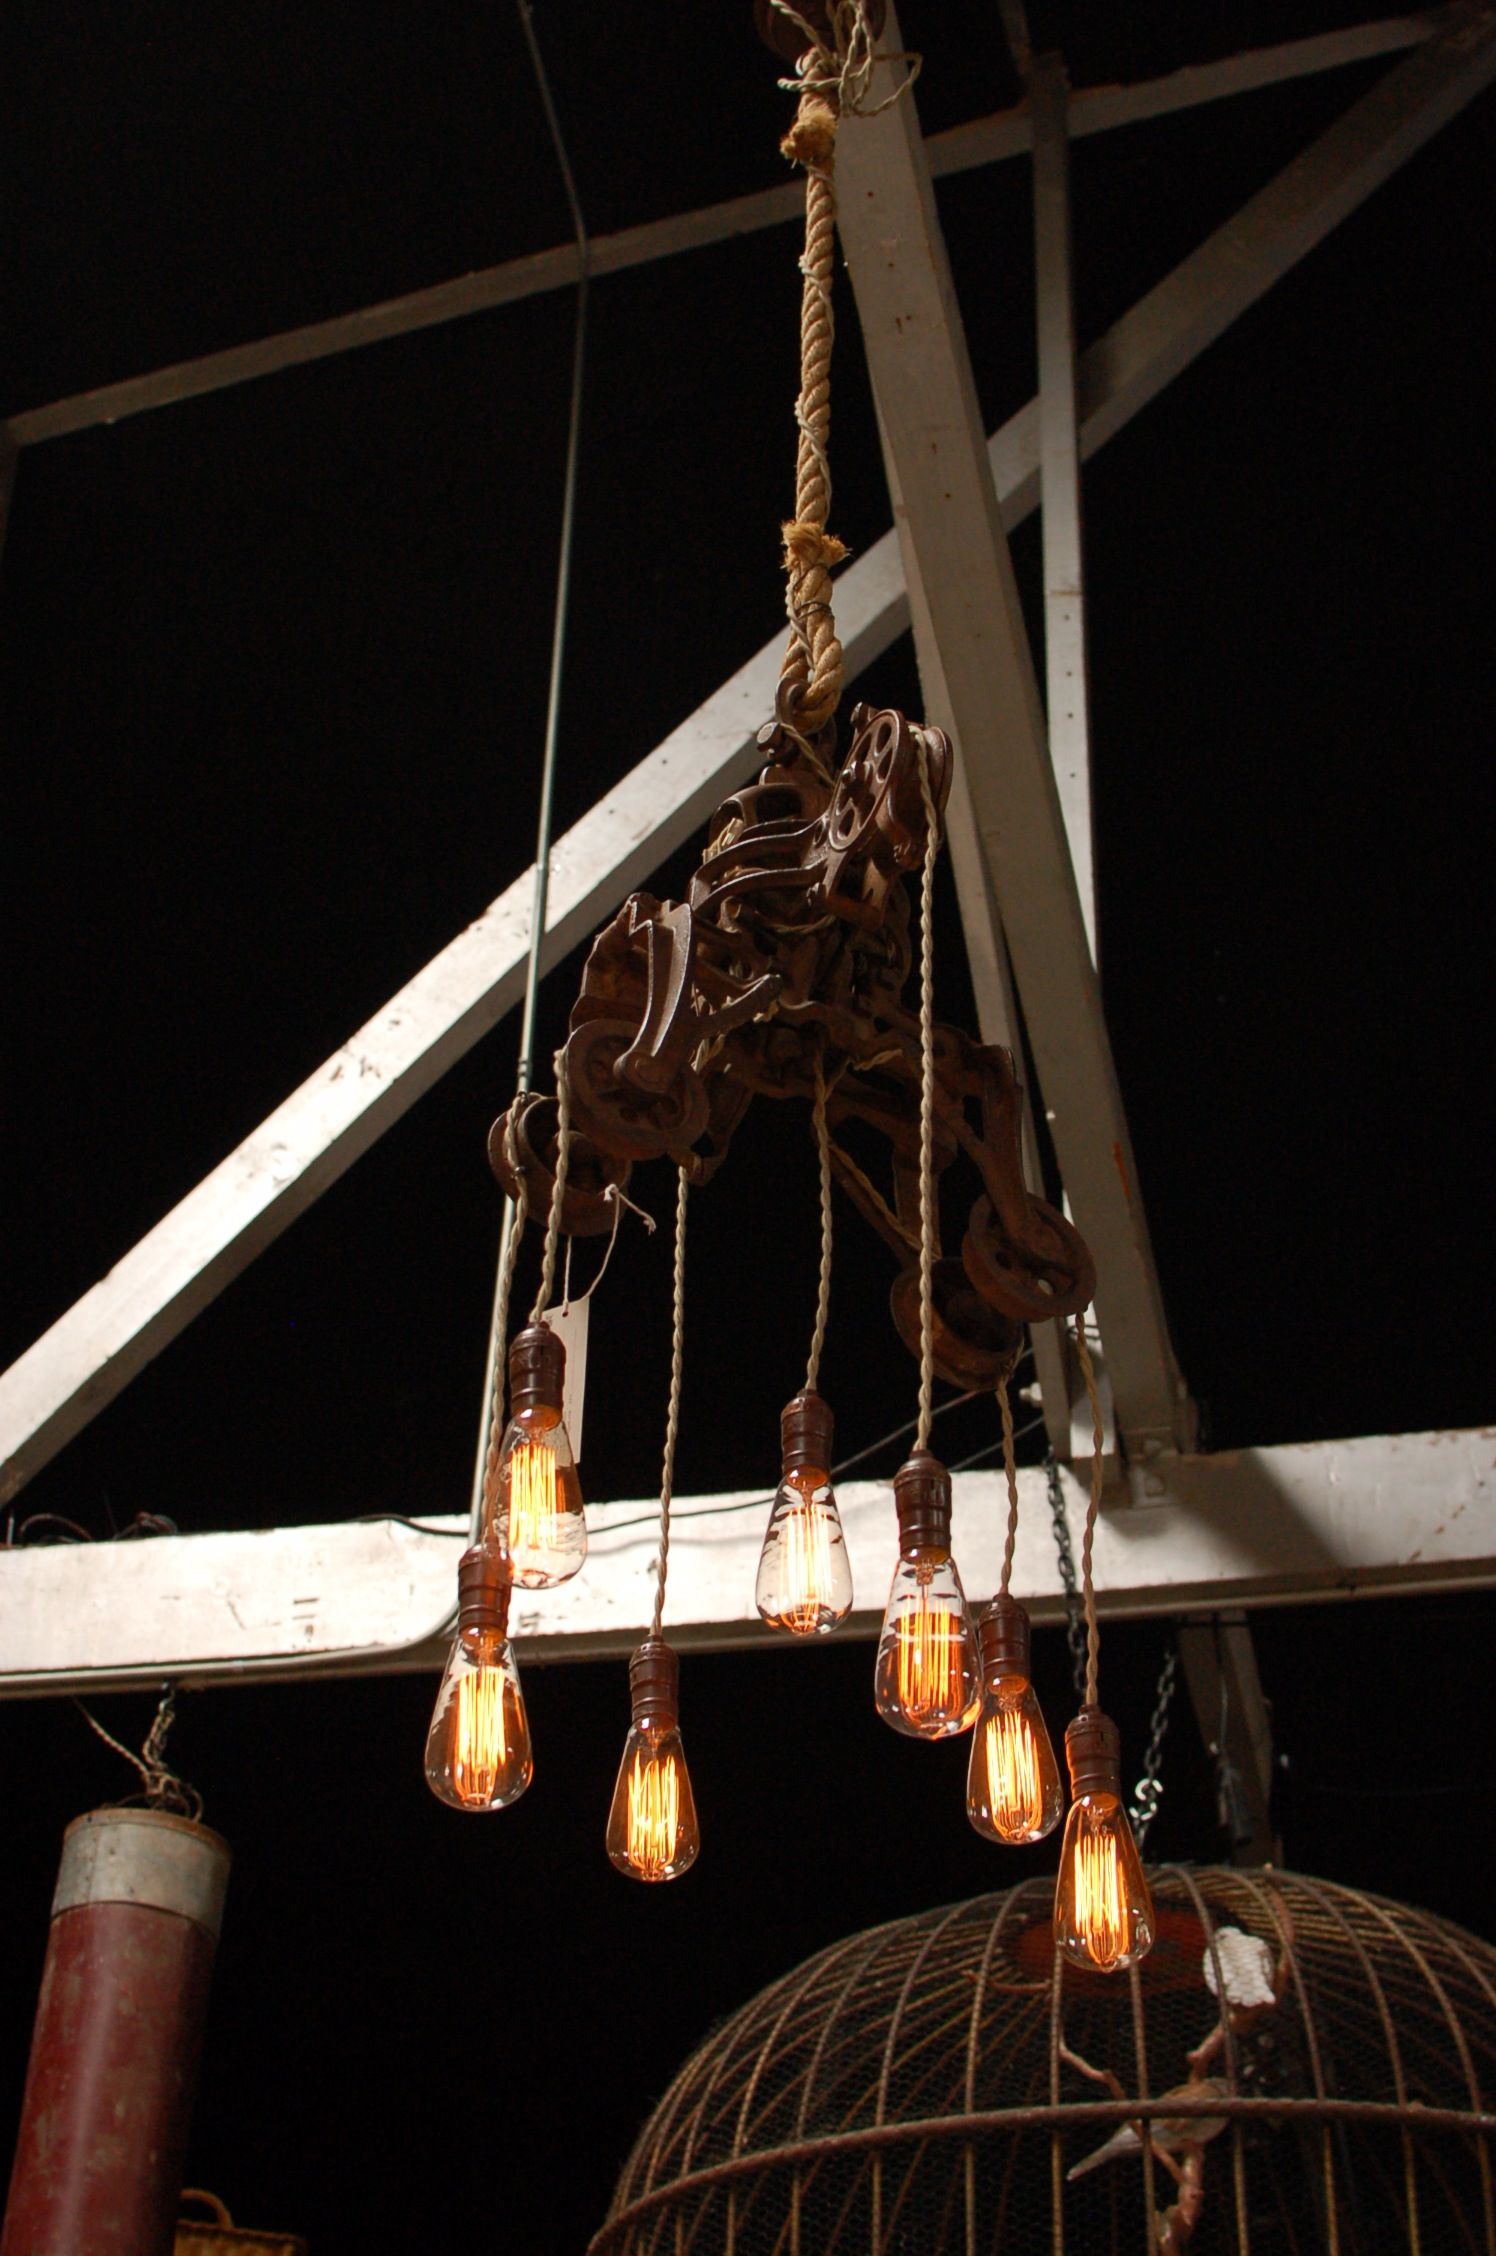 Big Daddy S Antiques Custom Light Fixture Using An Intricate Vintage Pulley System